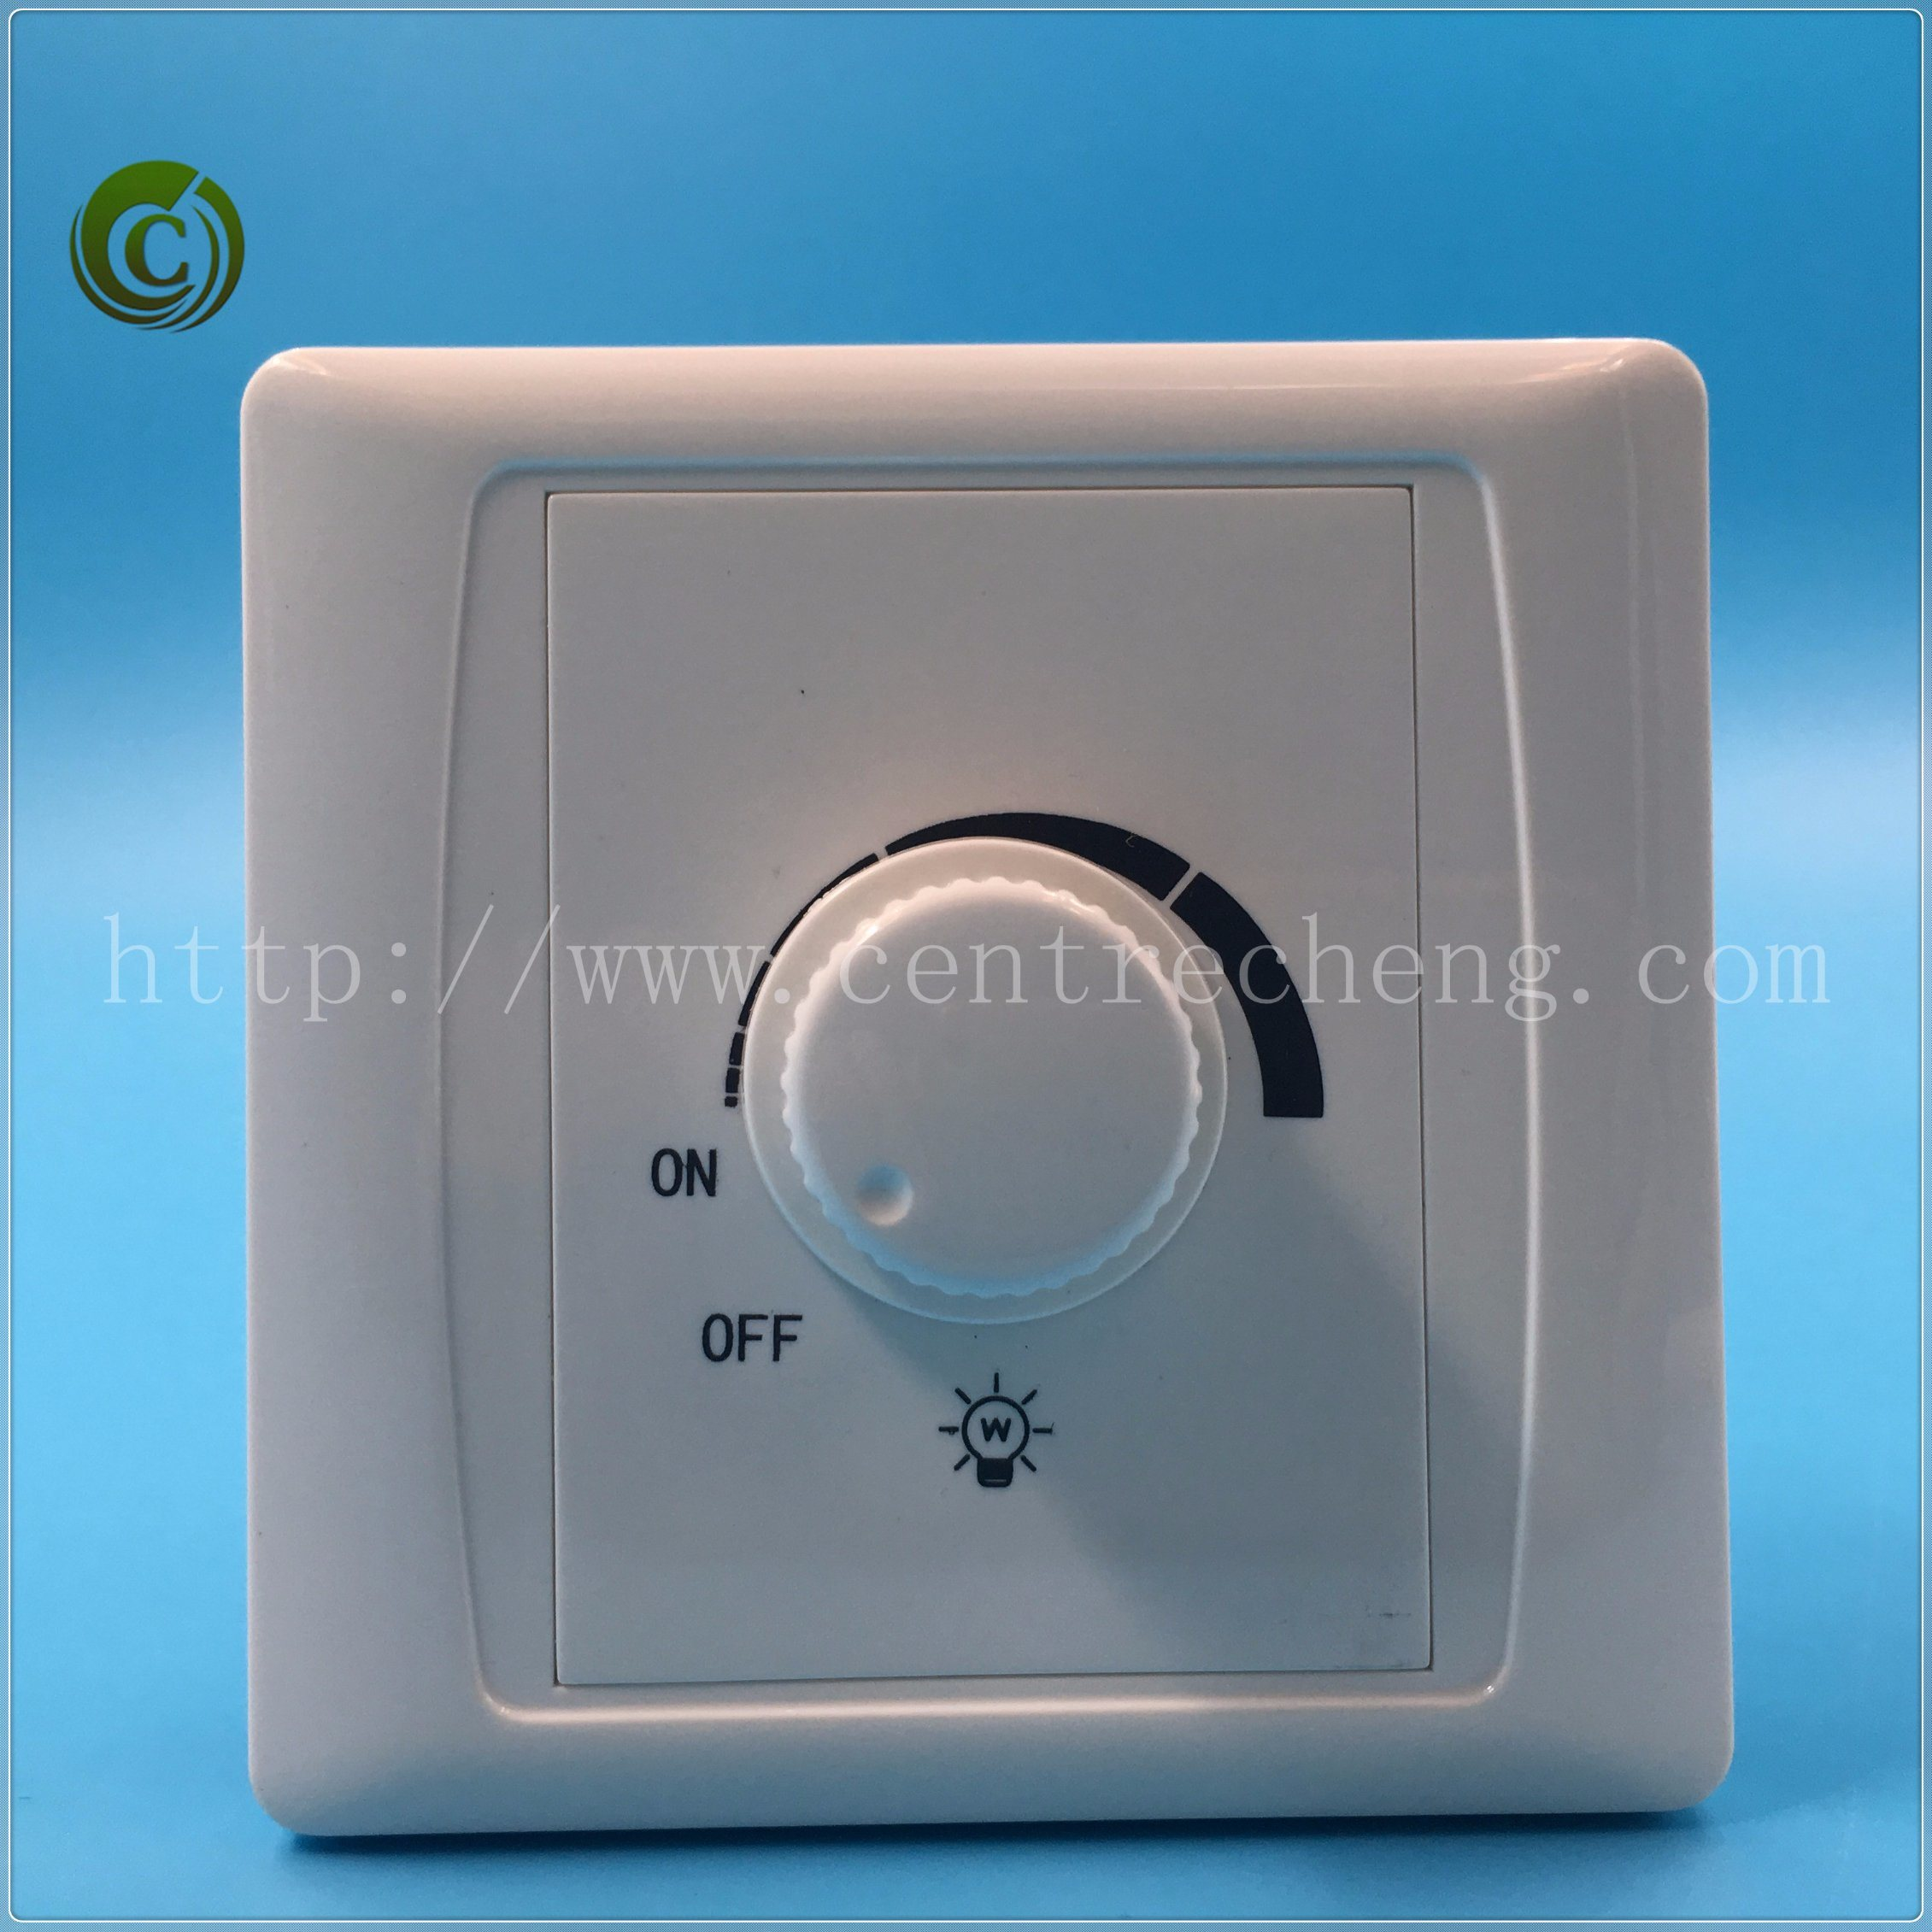 concord fan control dimmer wall speed fans pd slider switch light level products lighting ceiling